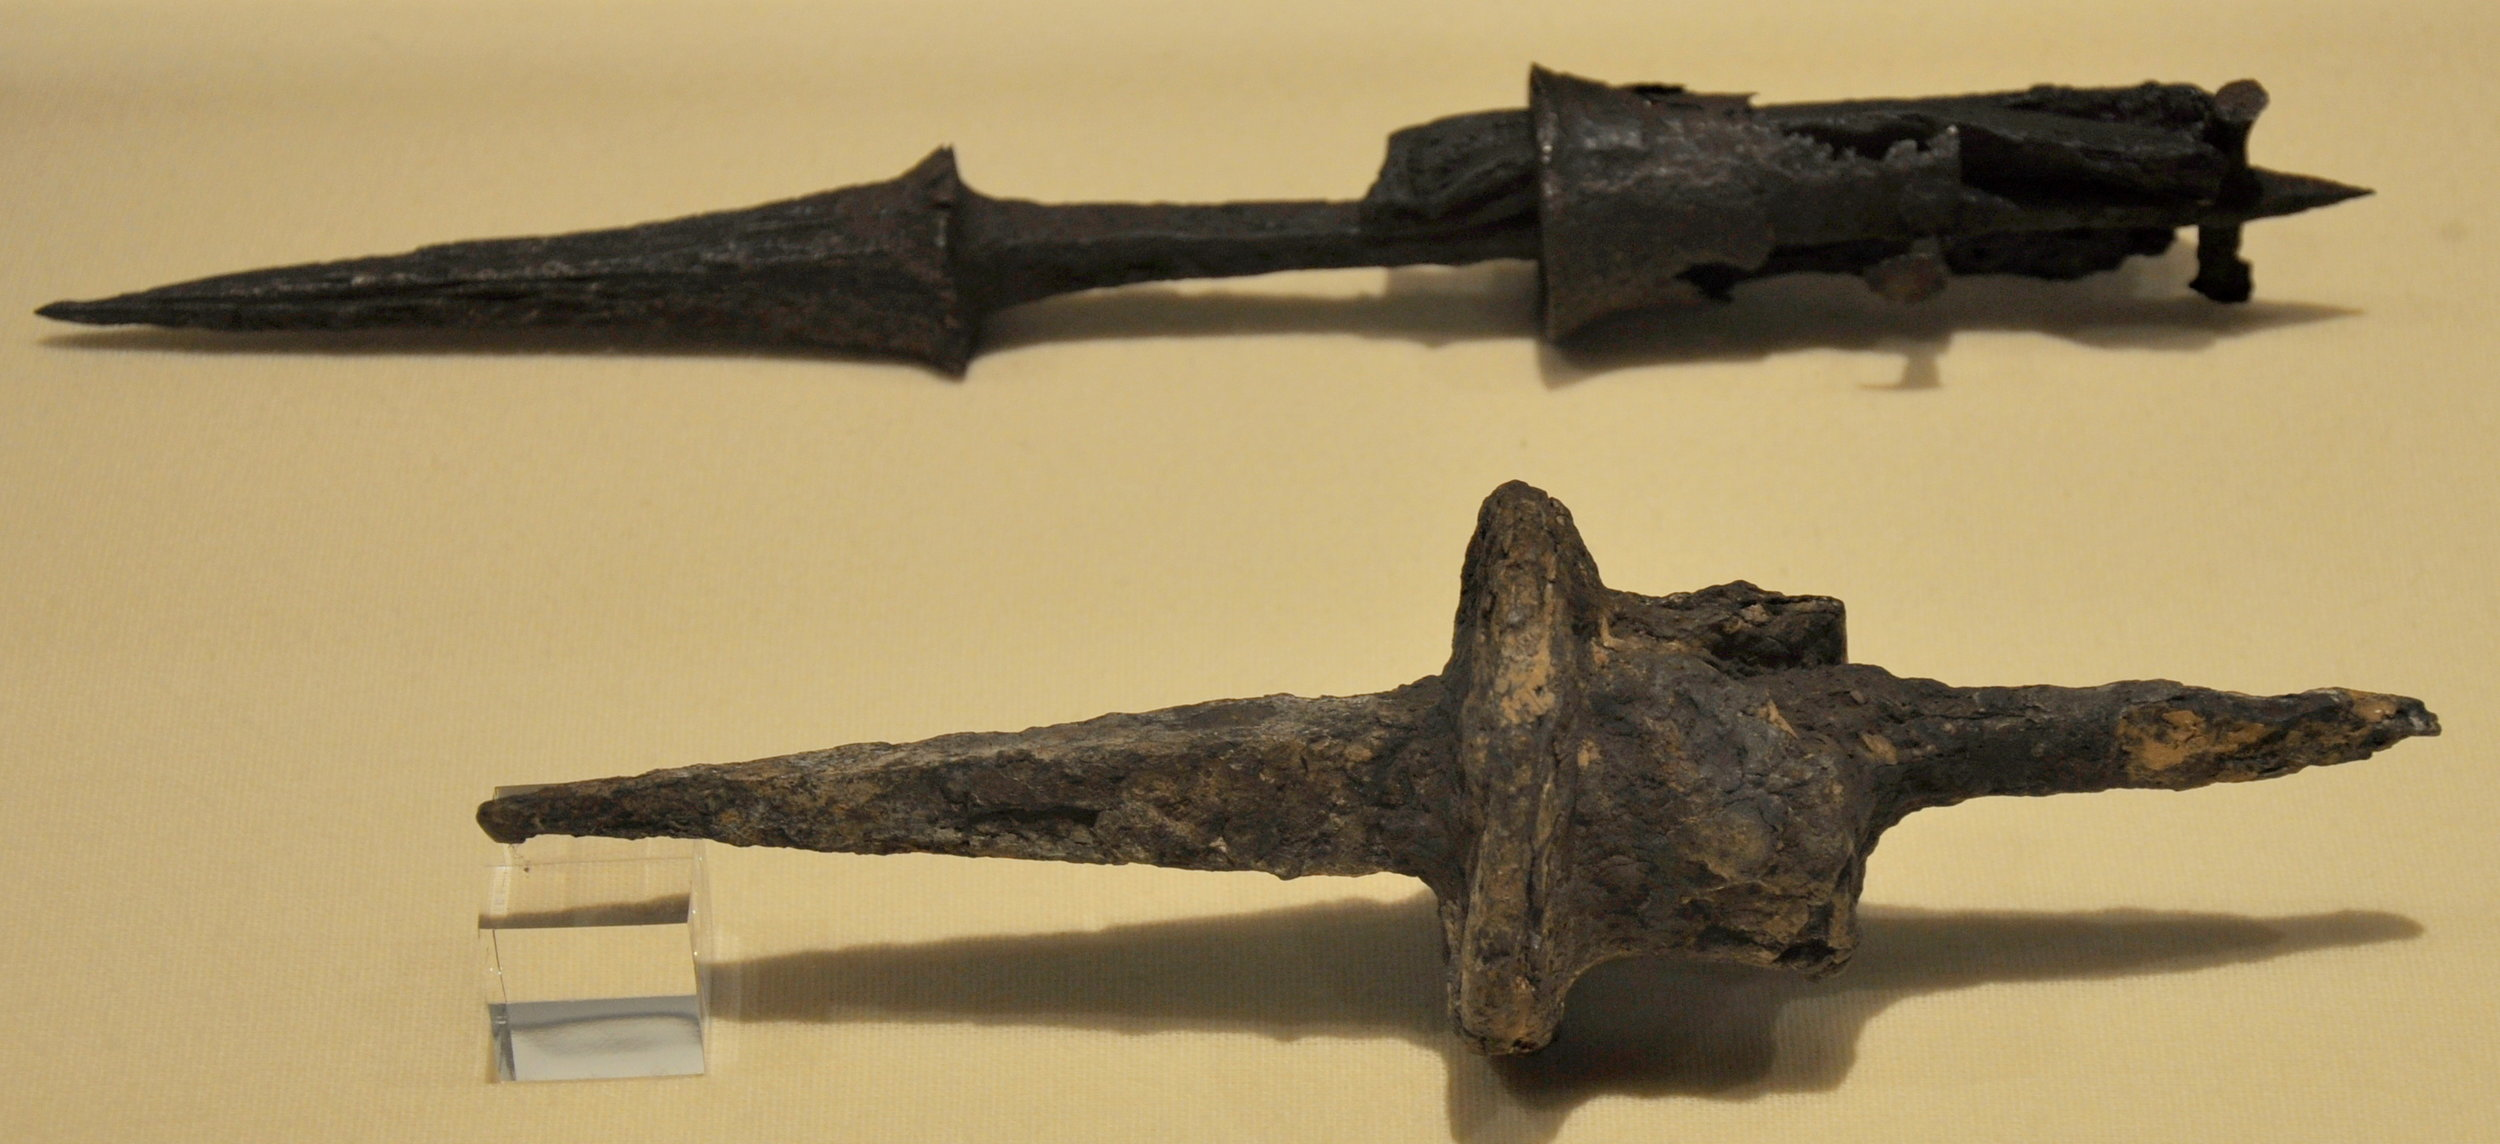 Remains of Goedendags from 1302 found in Kortrijk. Photo by Paul Hermans